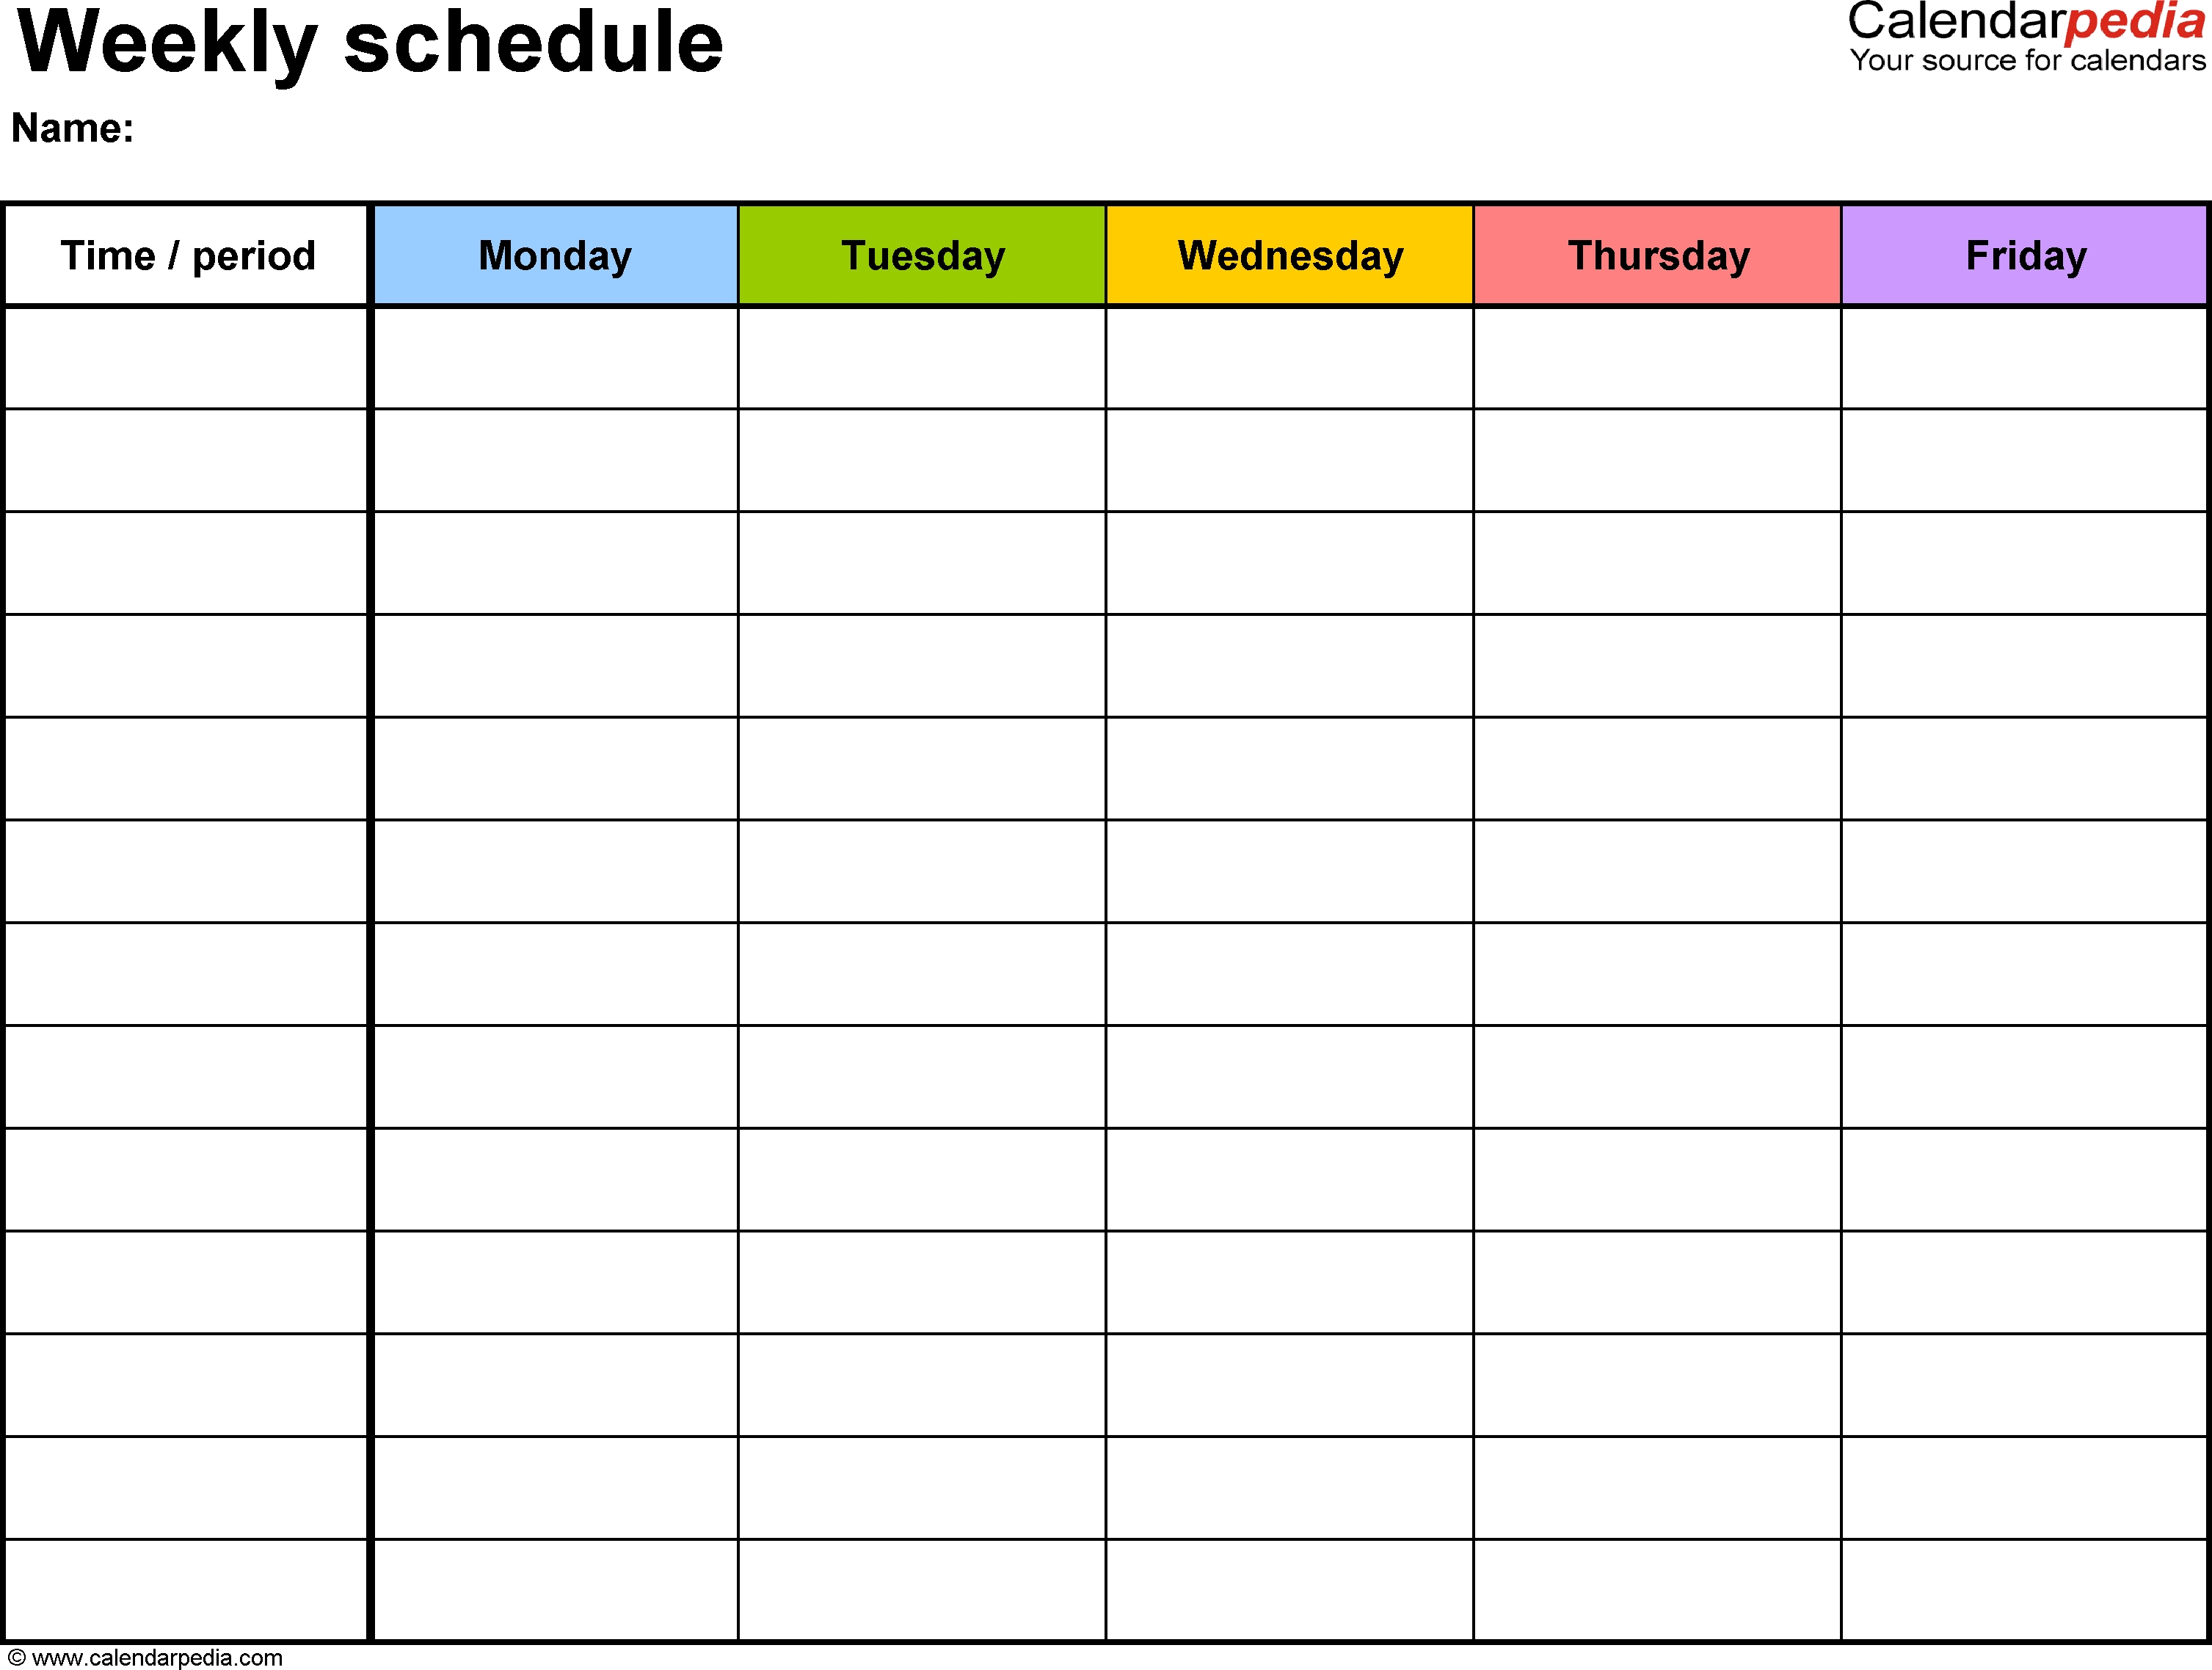 Free Weekly Schedule Templates For Word - 18 Templates  Monday Through Friday Daily Planner